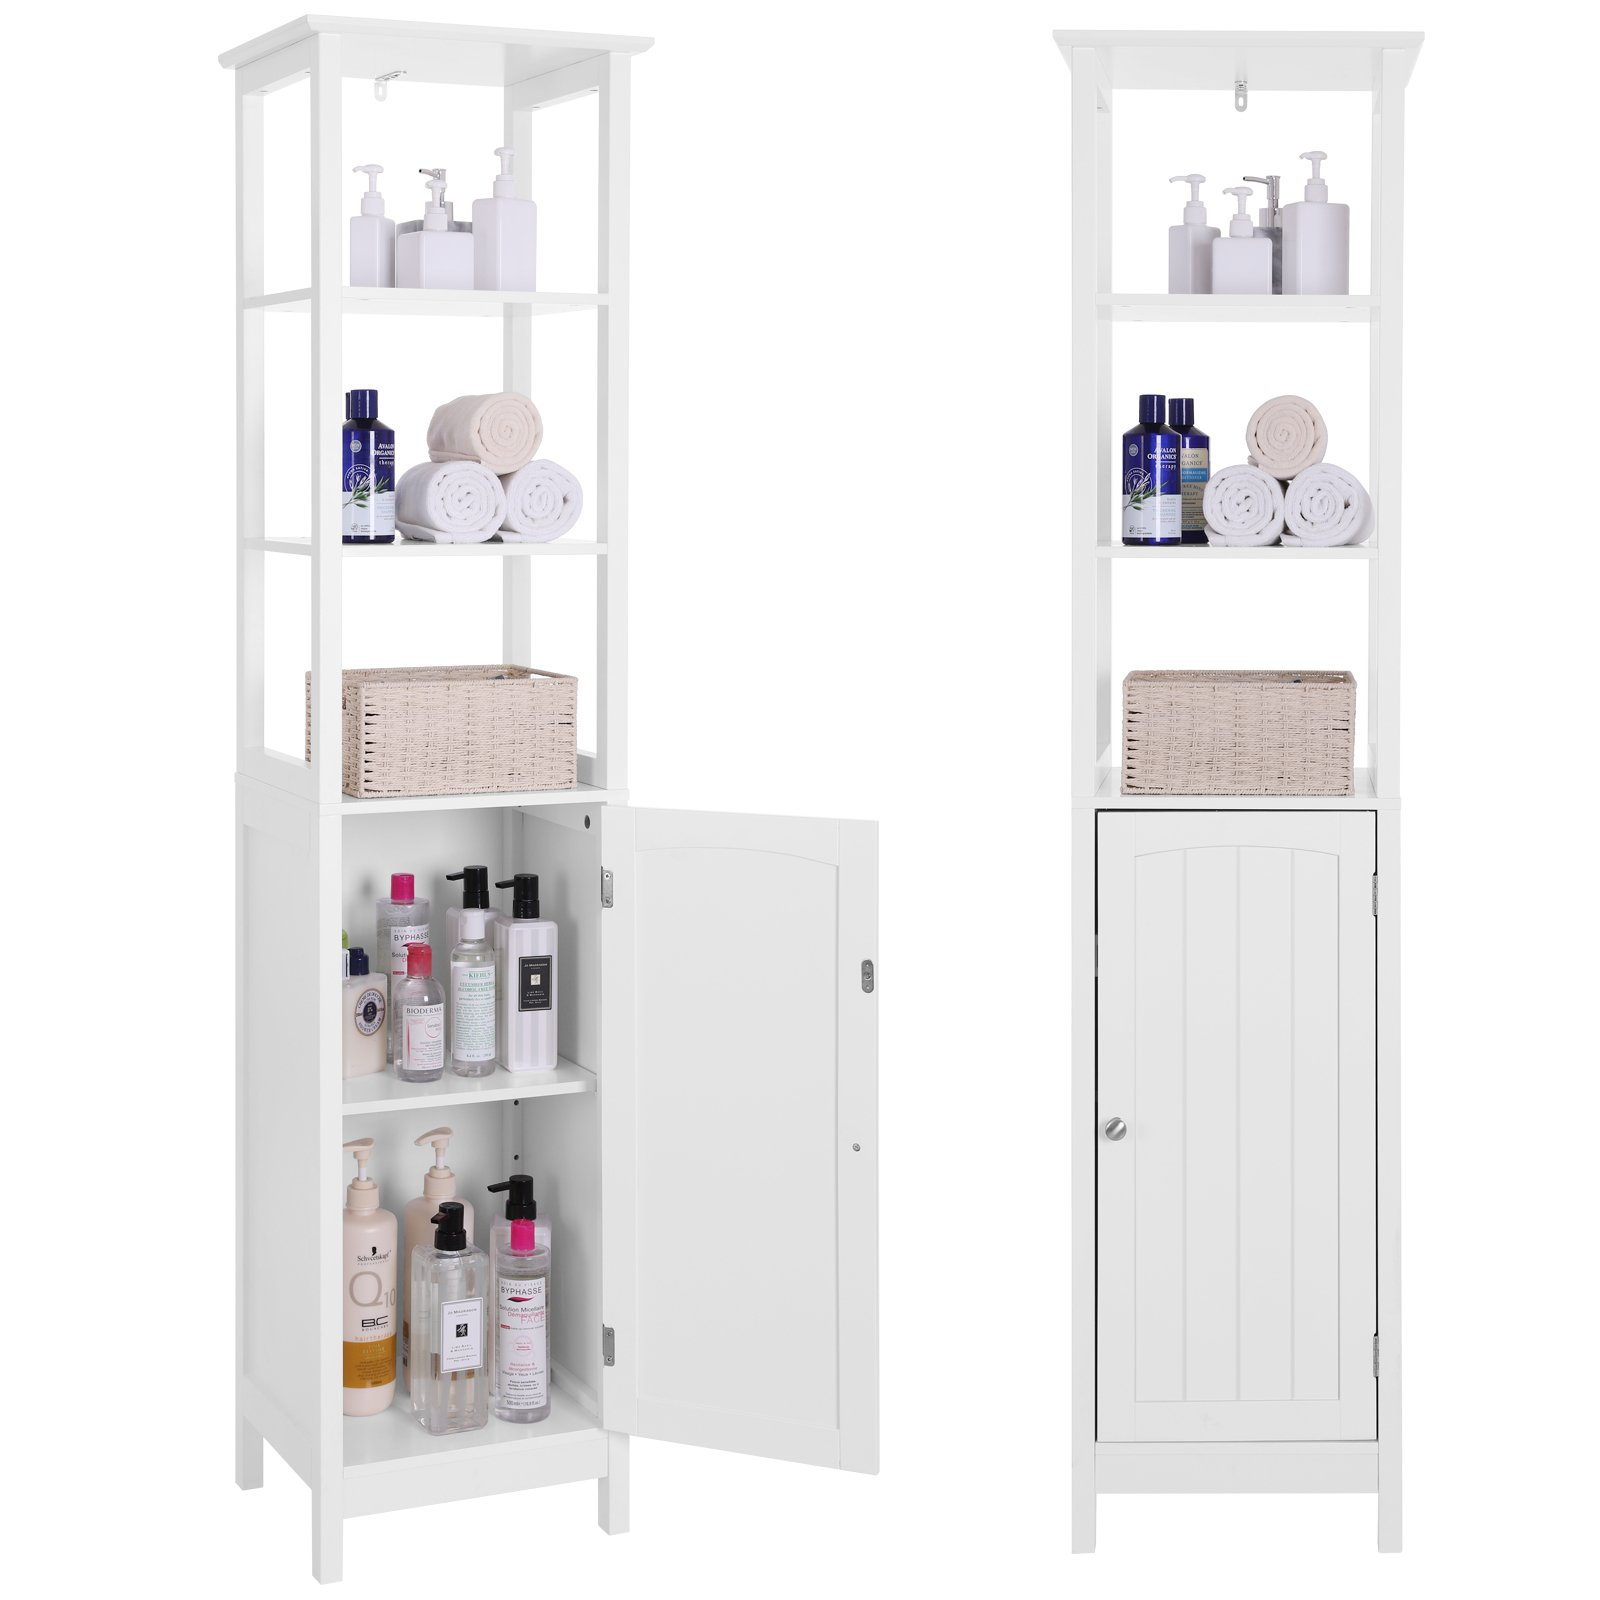 VASAGLE Floor Cabinet, Multifunctional Bathroom Storage